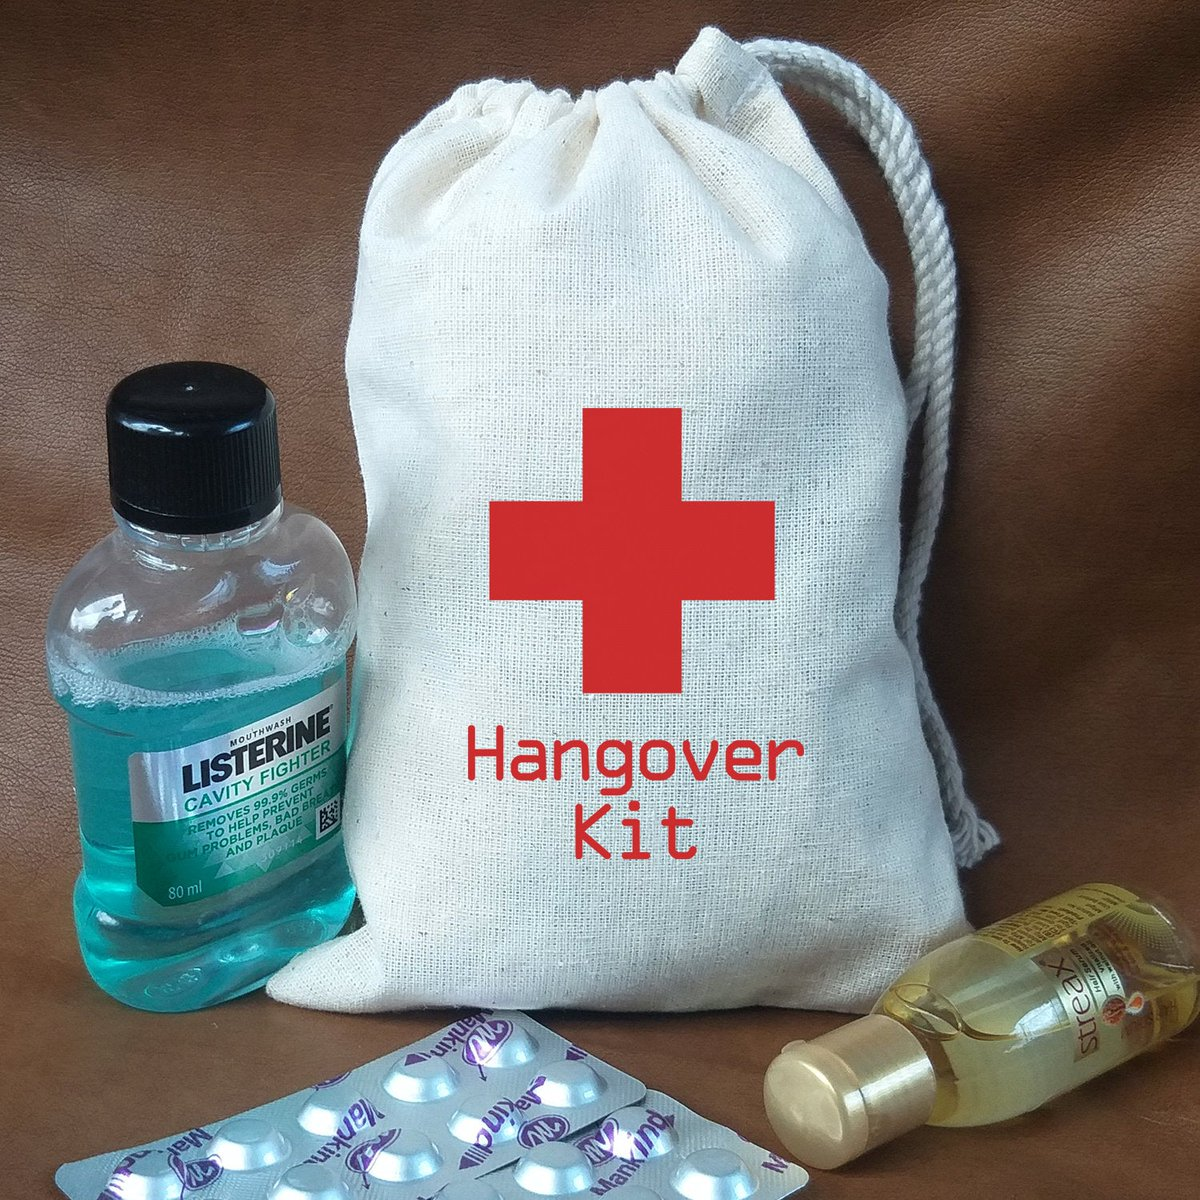 Excited to share the latest addition to my #etsy shop: Hangover kit - Hangover Relief Kit - Hangover Kit Party Favors - Personalized Hangover Kit - Survival Bag - Drawstring Bags-Hen Party Bags  #black #white #hangoverkit #recoverykitbags #partyf